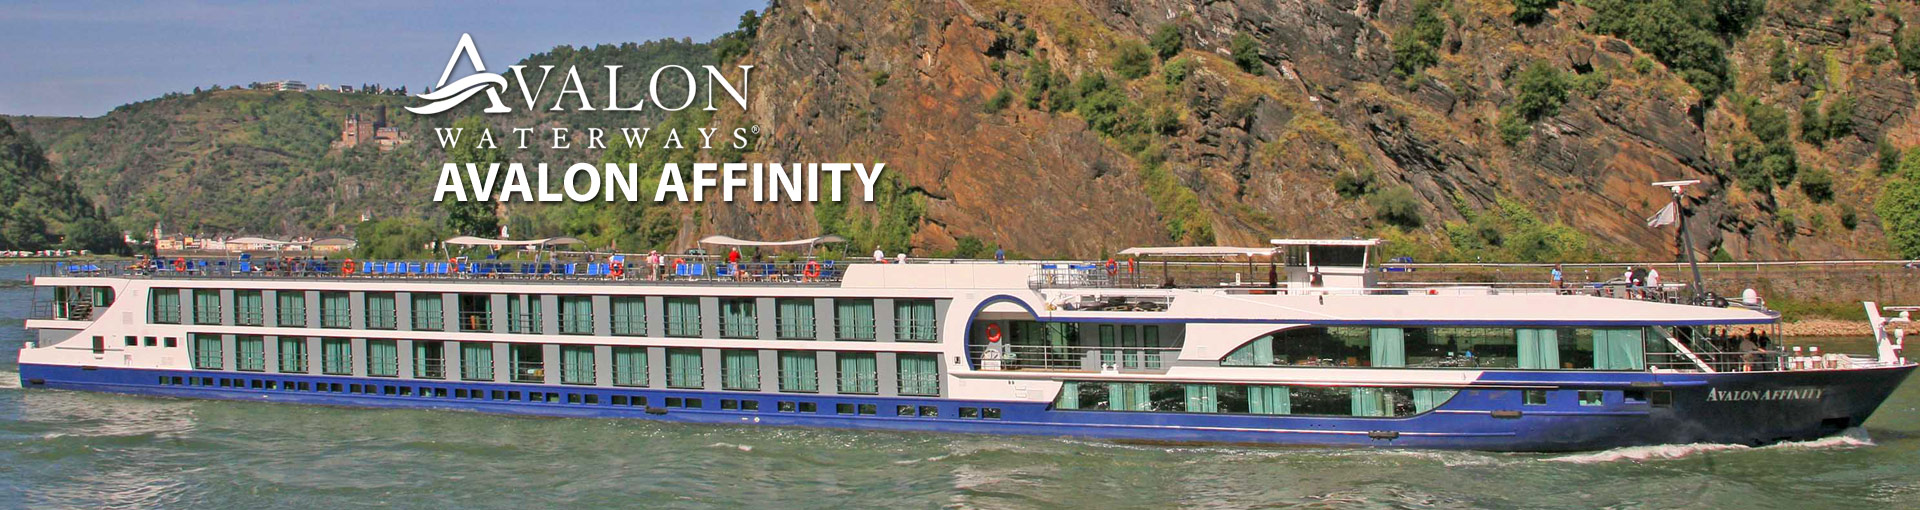 Avalon Waterways Affinity river cruise ship